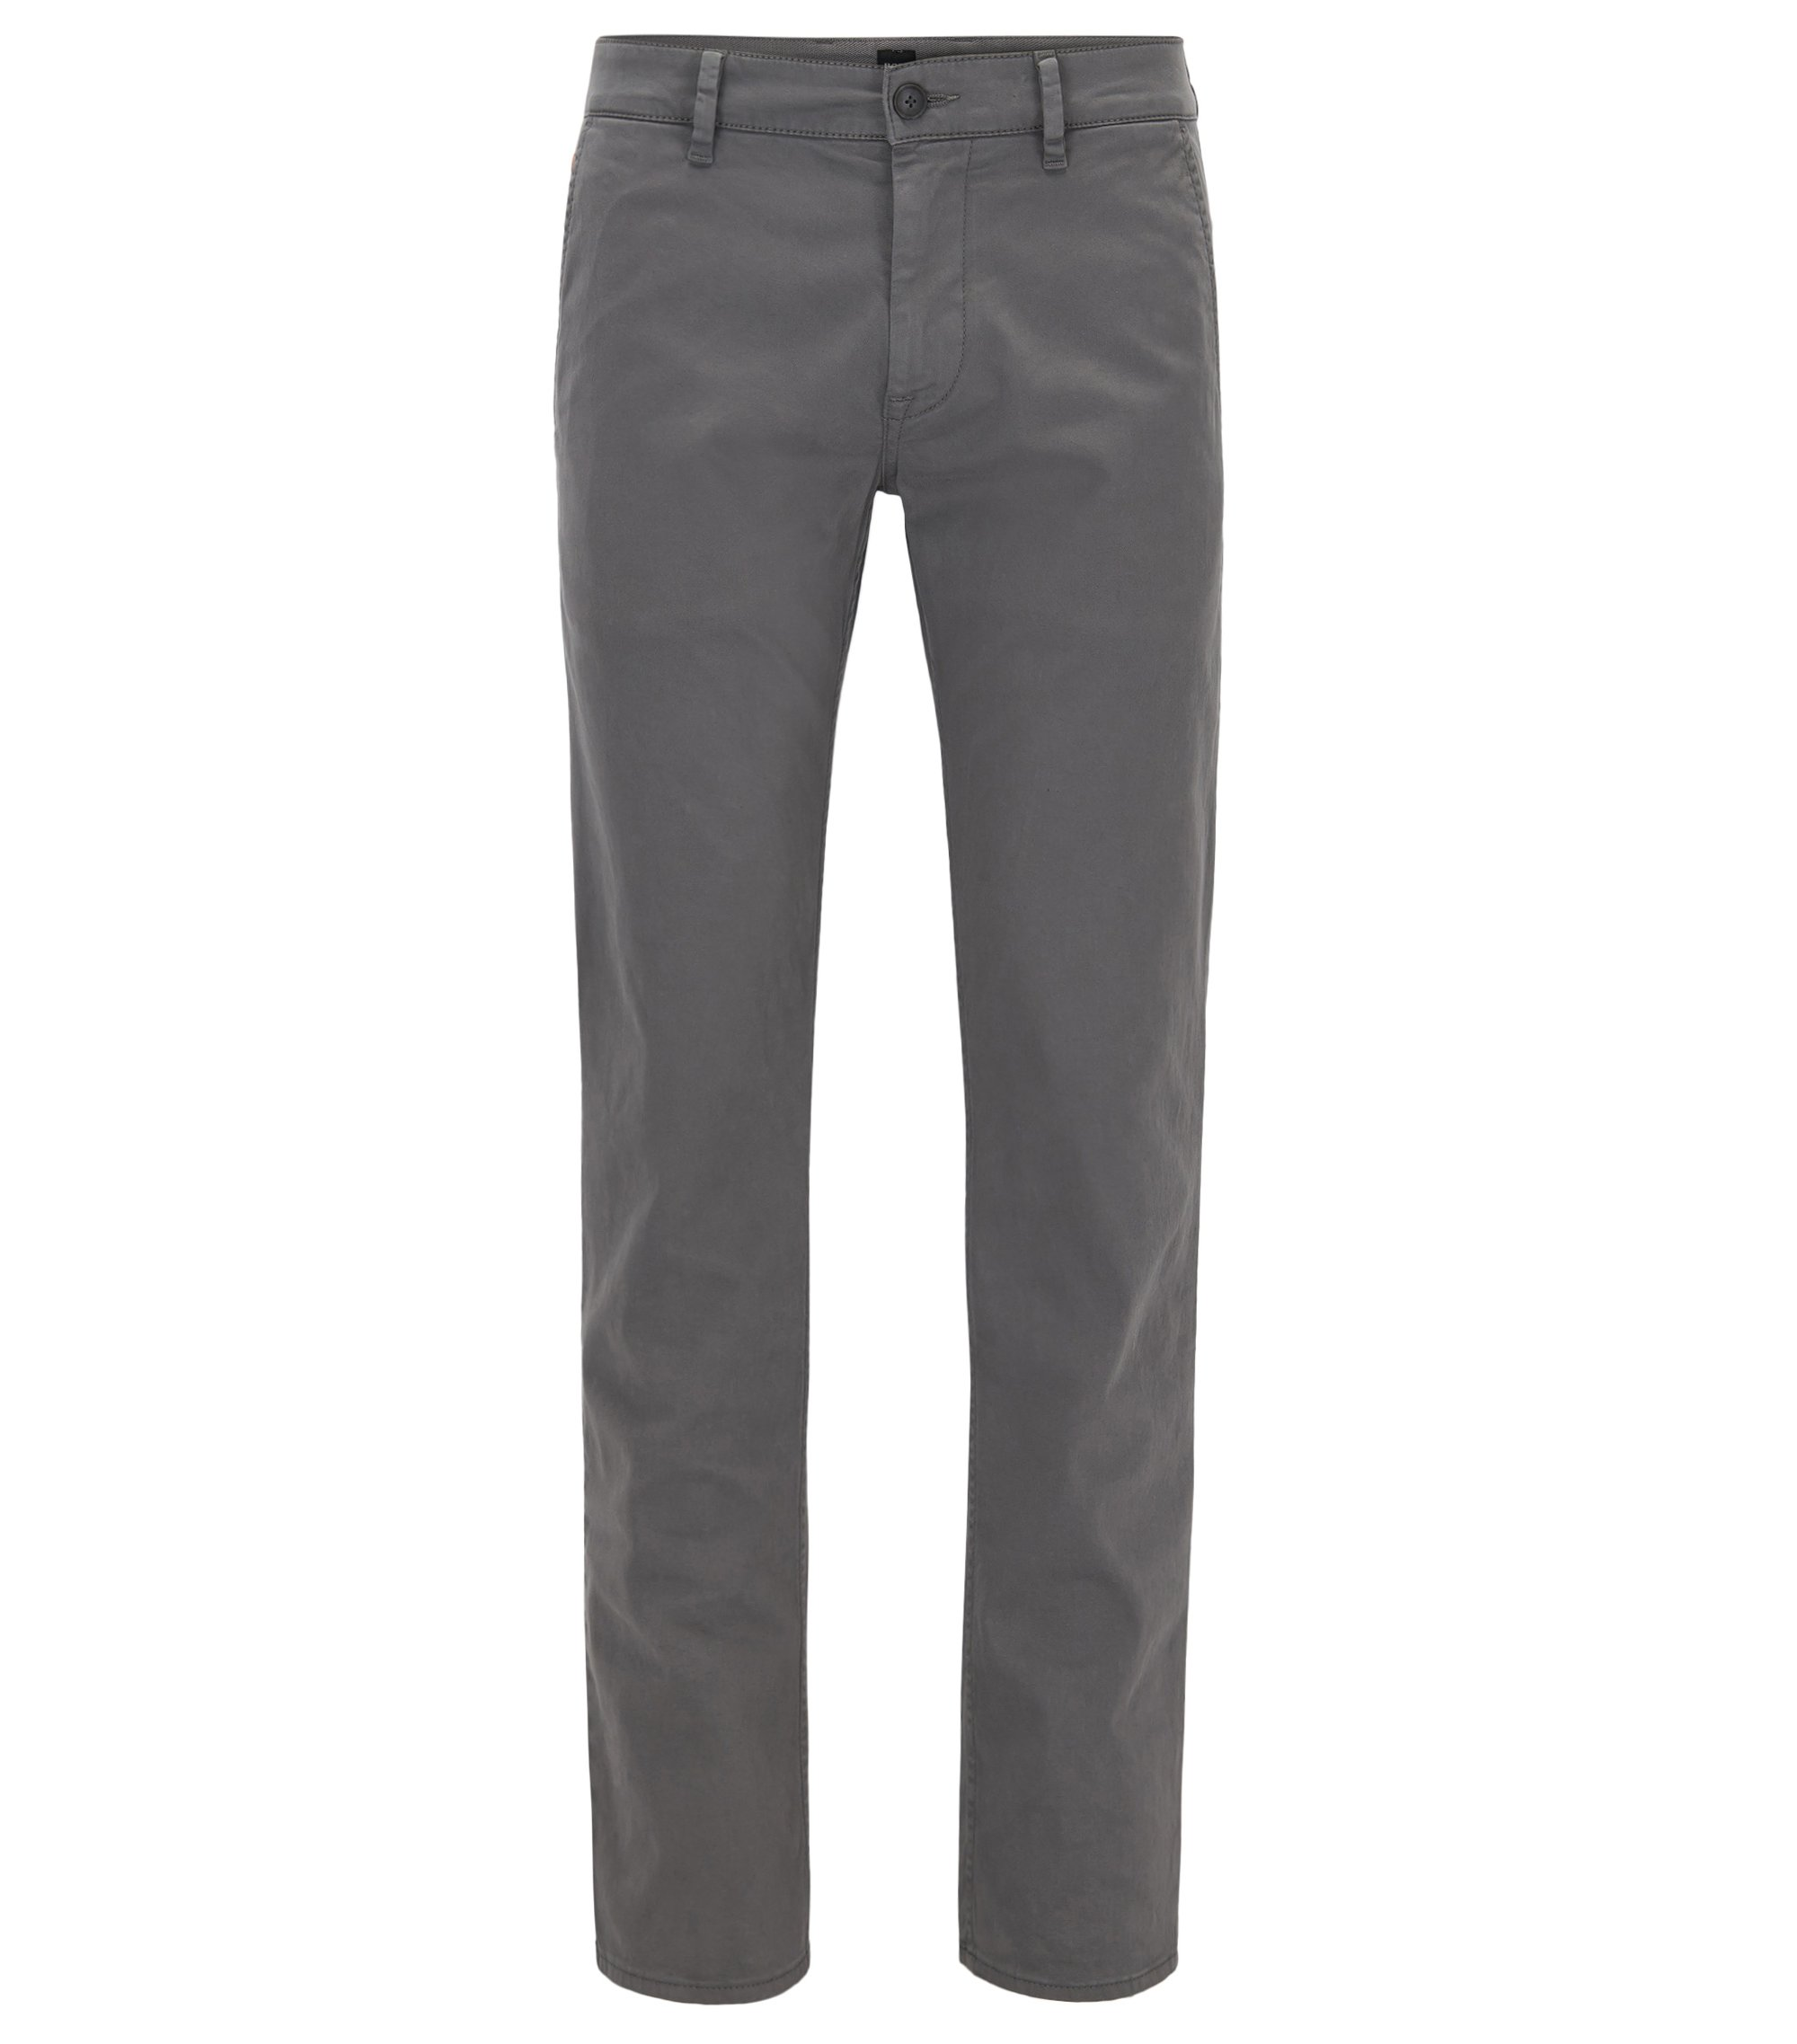 Chino casual Slim Fit en coton stretch brossé, Gris sombre